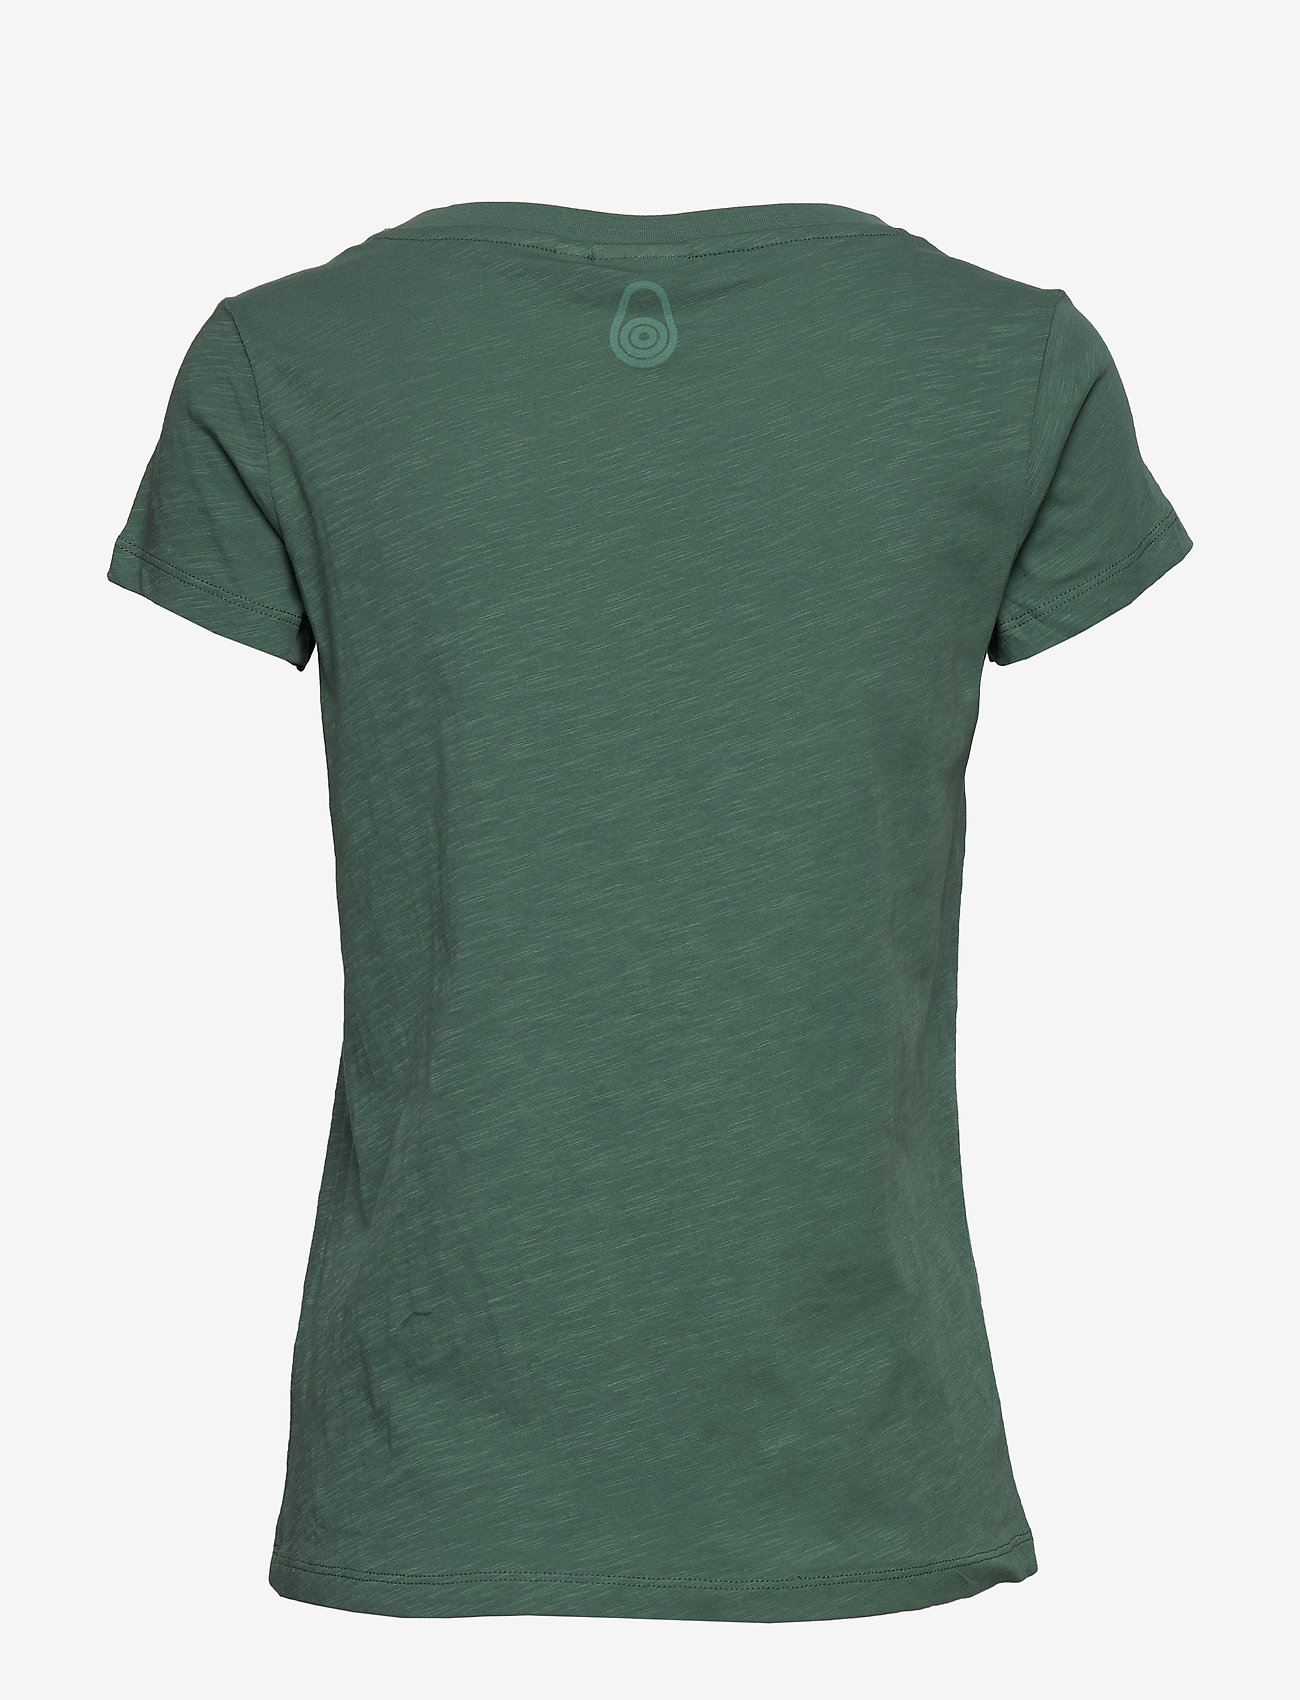 Sail Racing - W GALE TEE - t-shirts - sage green - 1